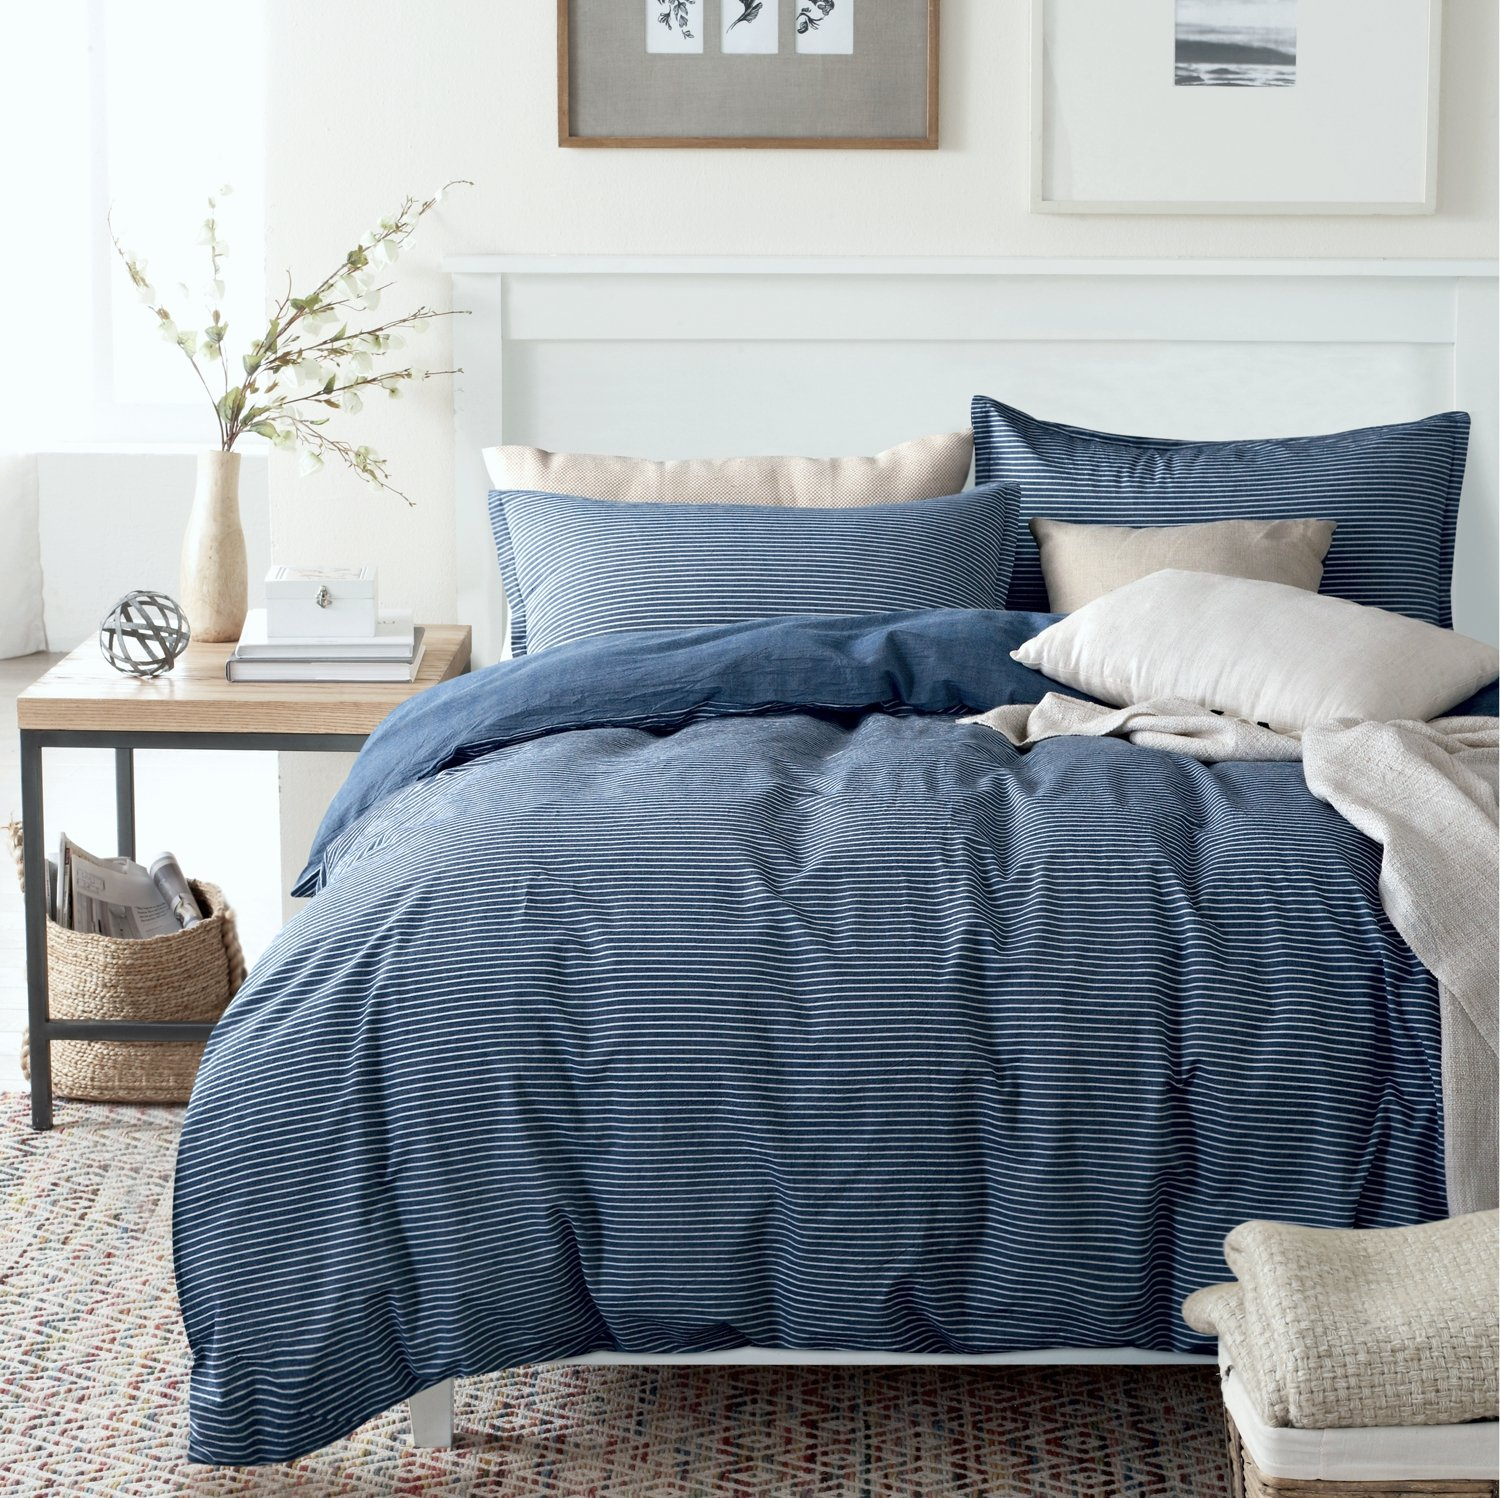 online main johnlewis com rsp john single at grey cover pdp lewis duvet coastal chambray buyjohn set